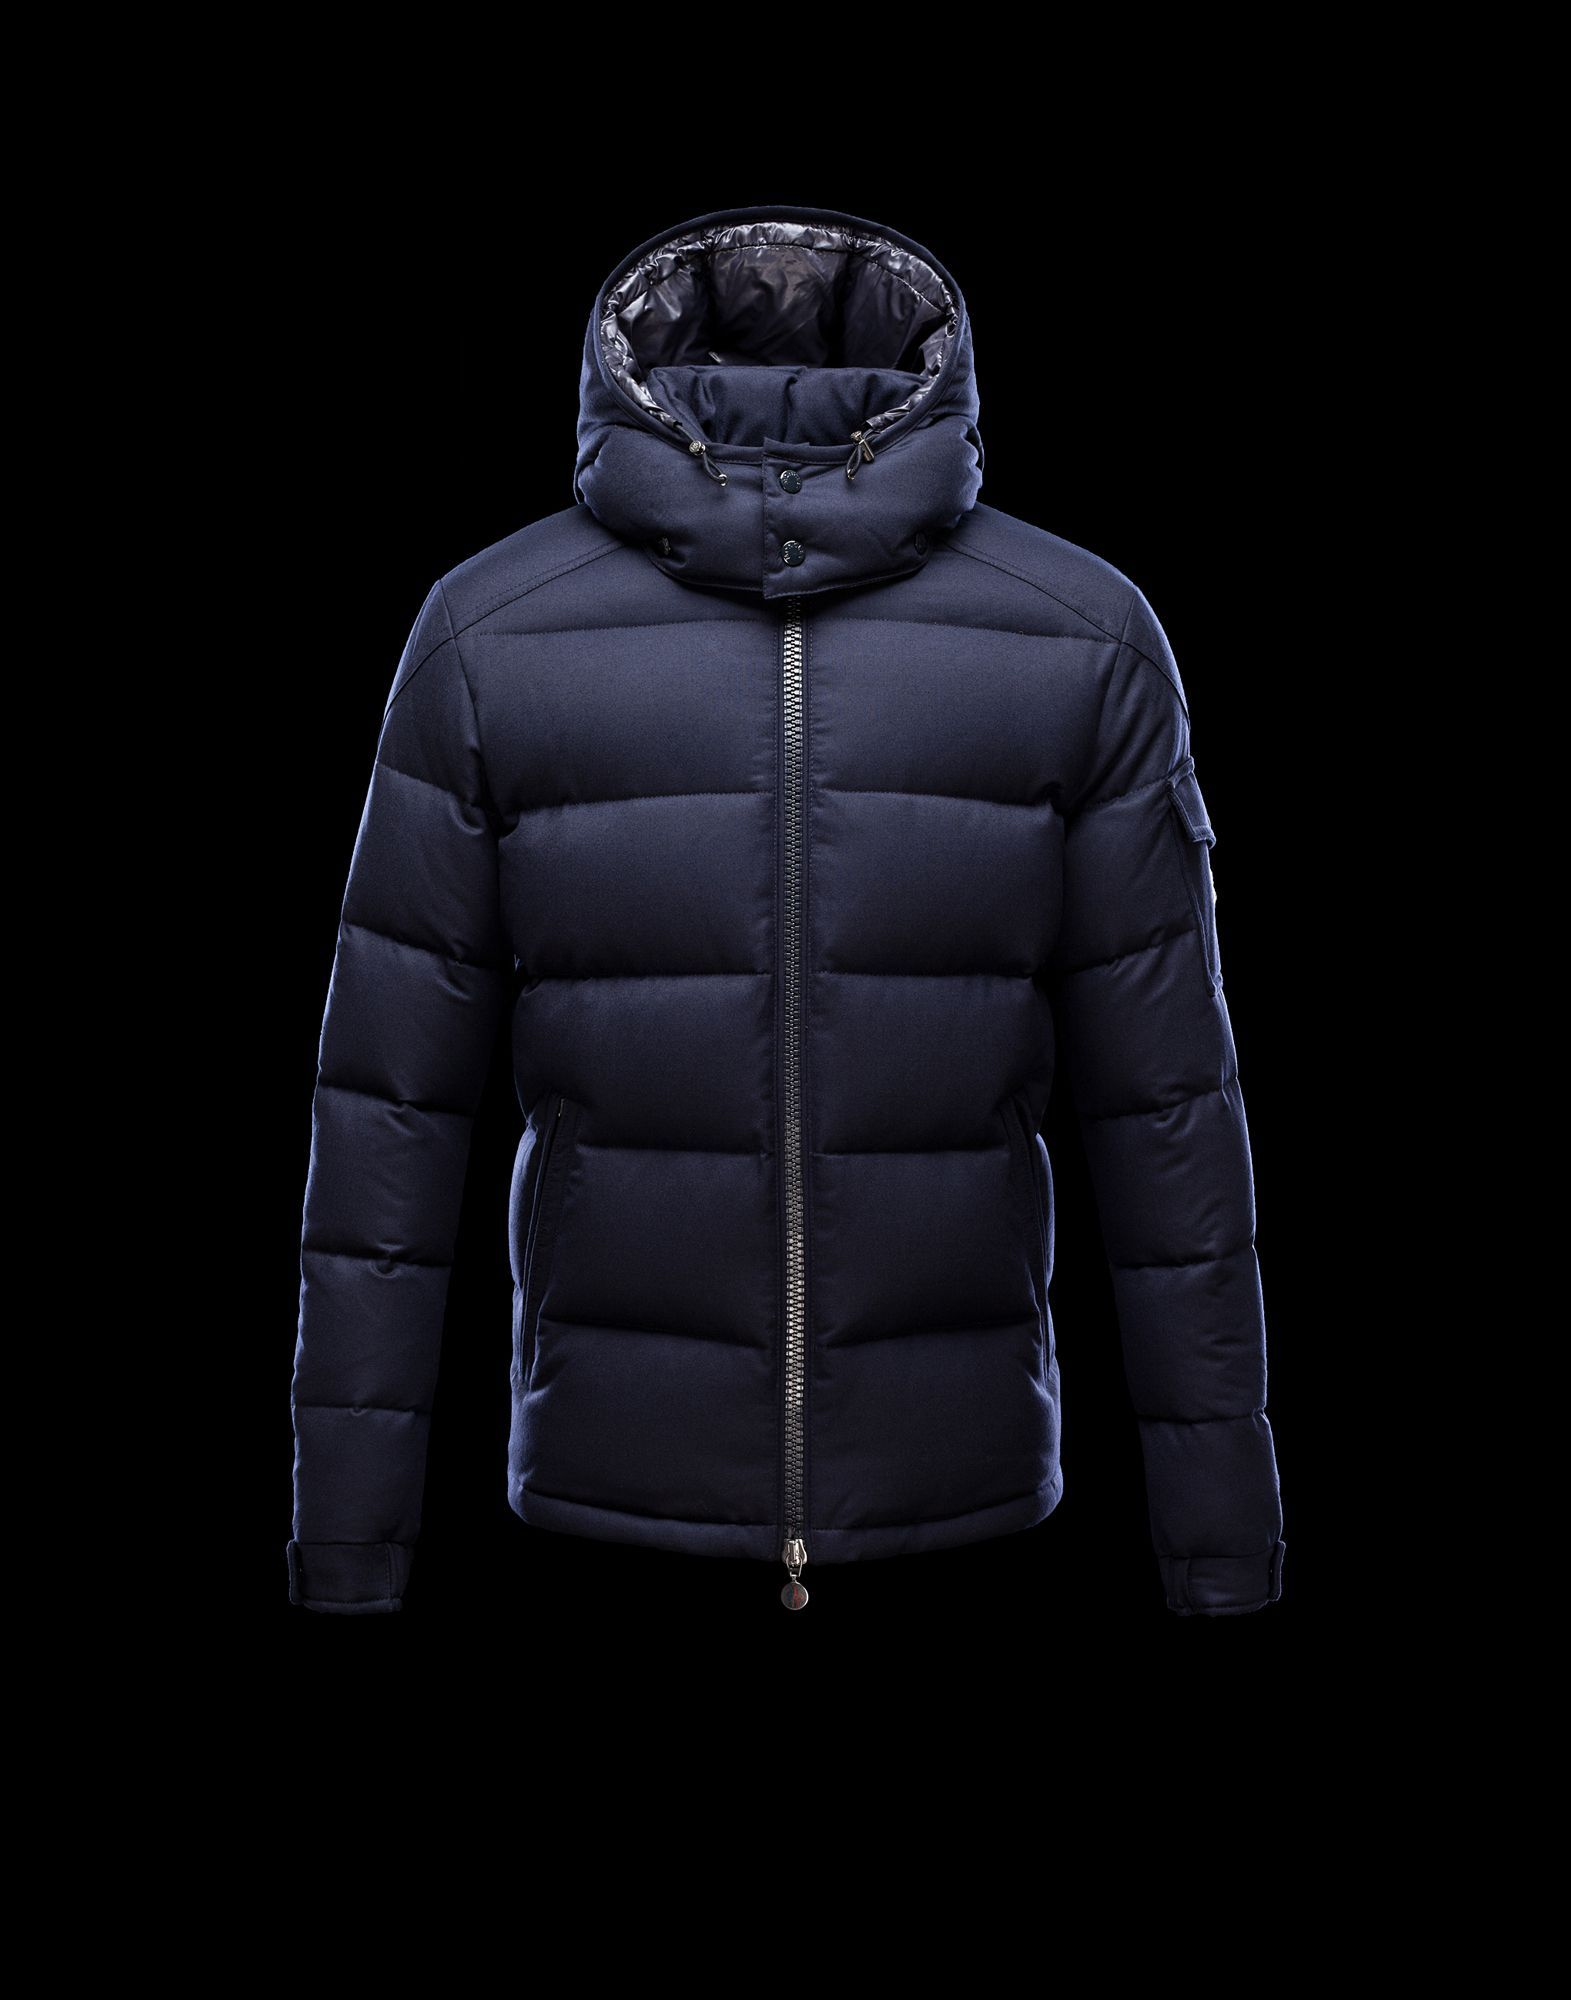 fae8045adda3 Top Choice Moncler Montgenevre Winter Jackets Men Blue  2781633  - £243.19